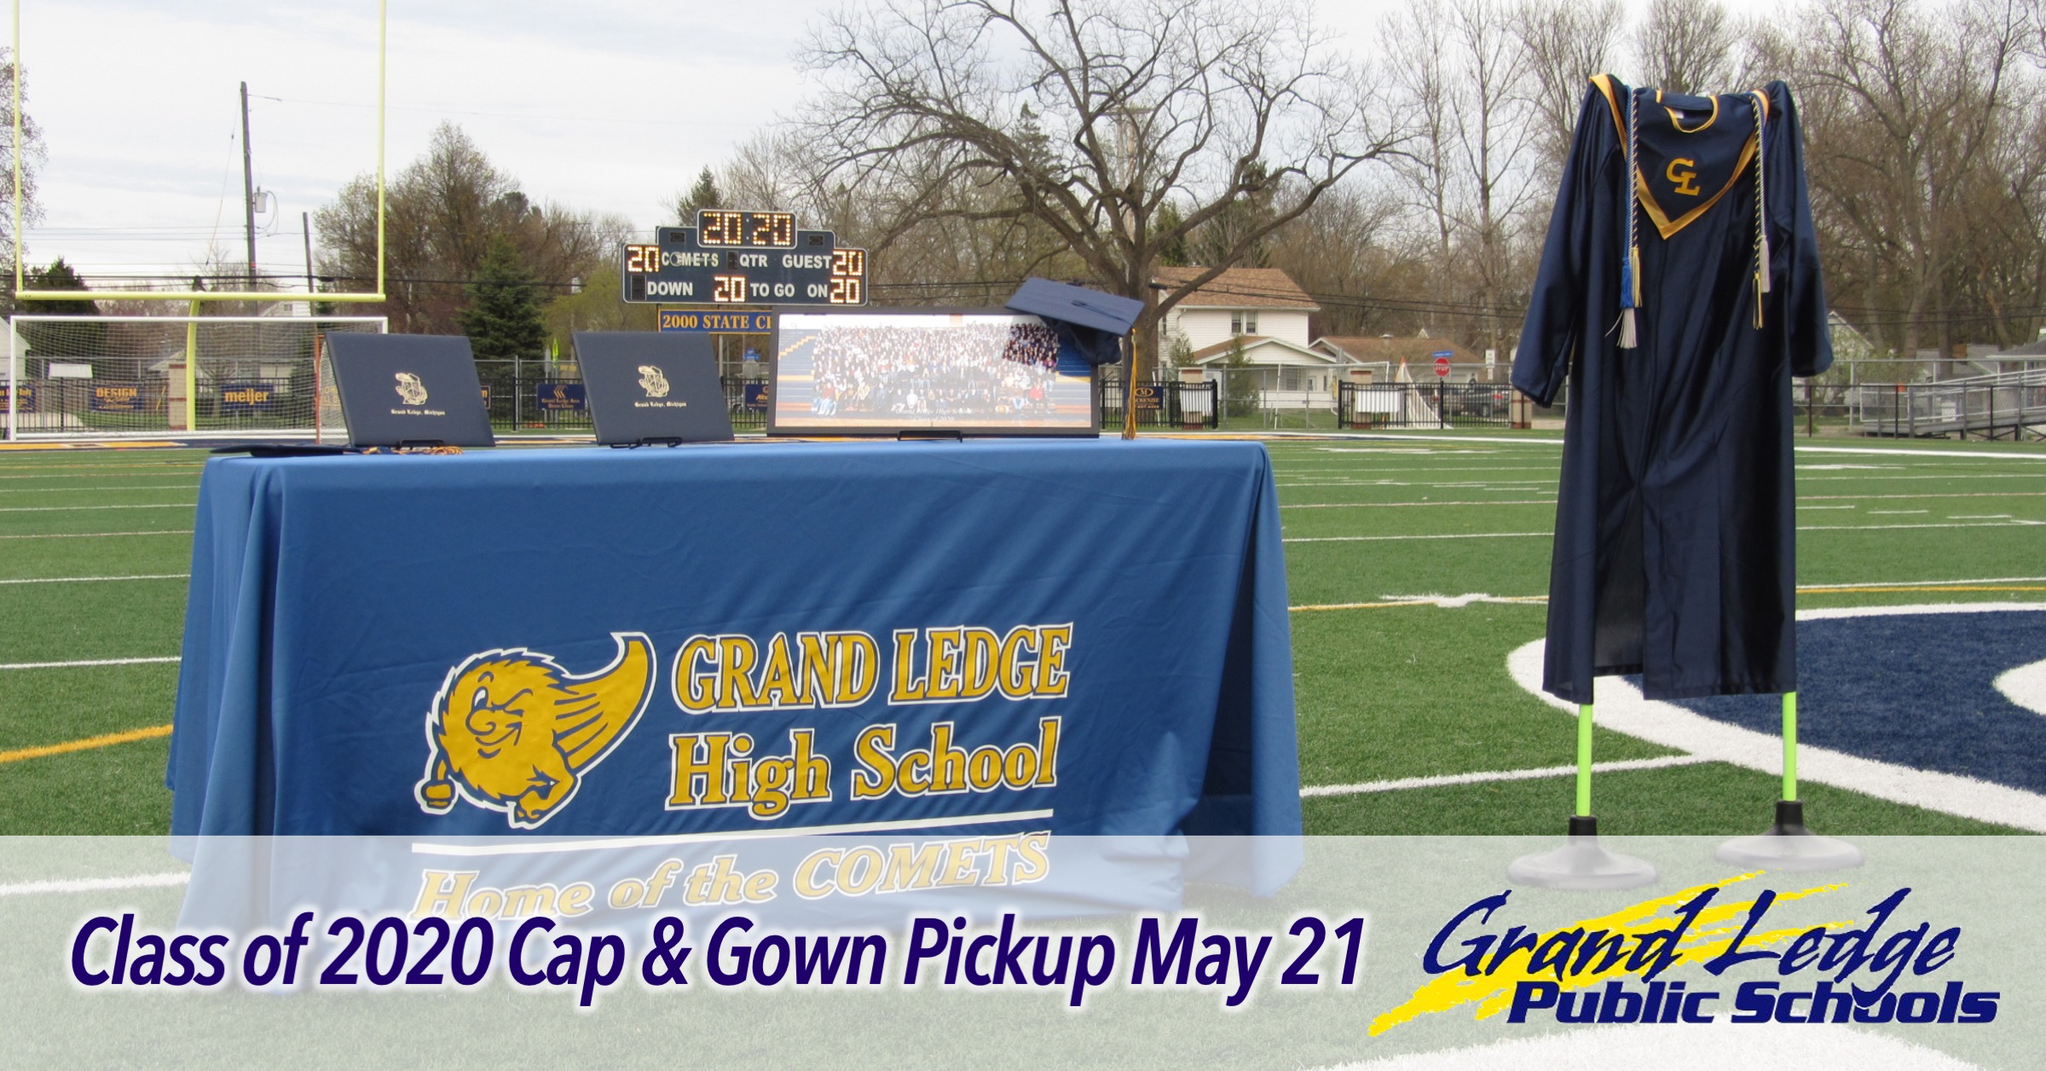 Cap & Gown Pickup May 21